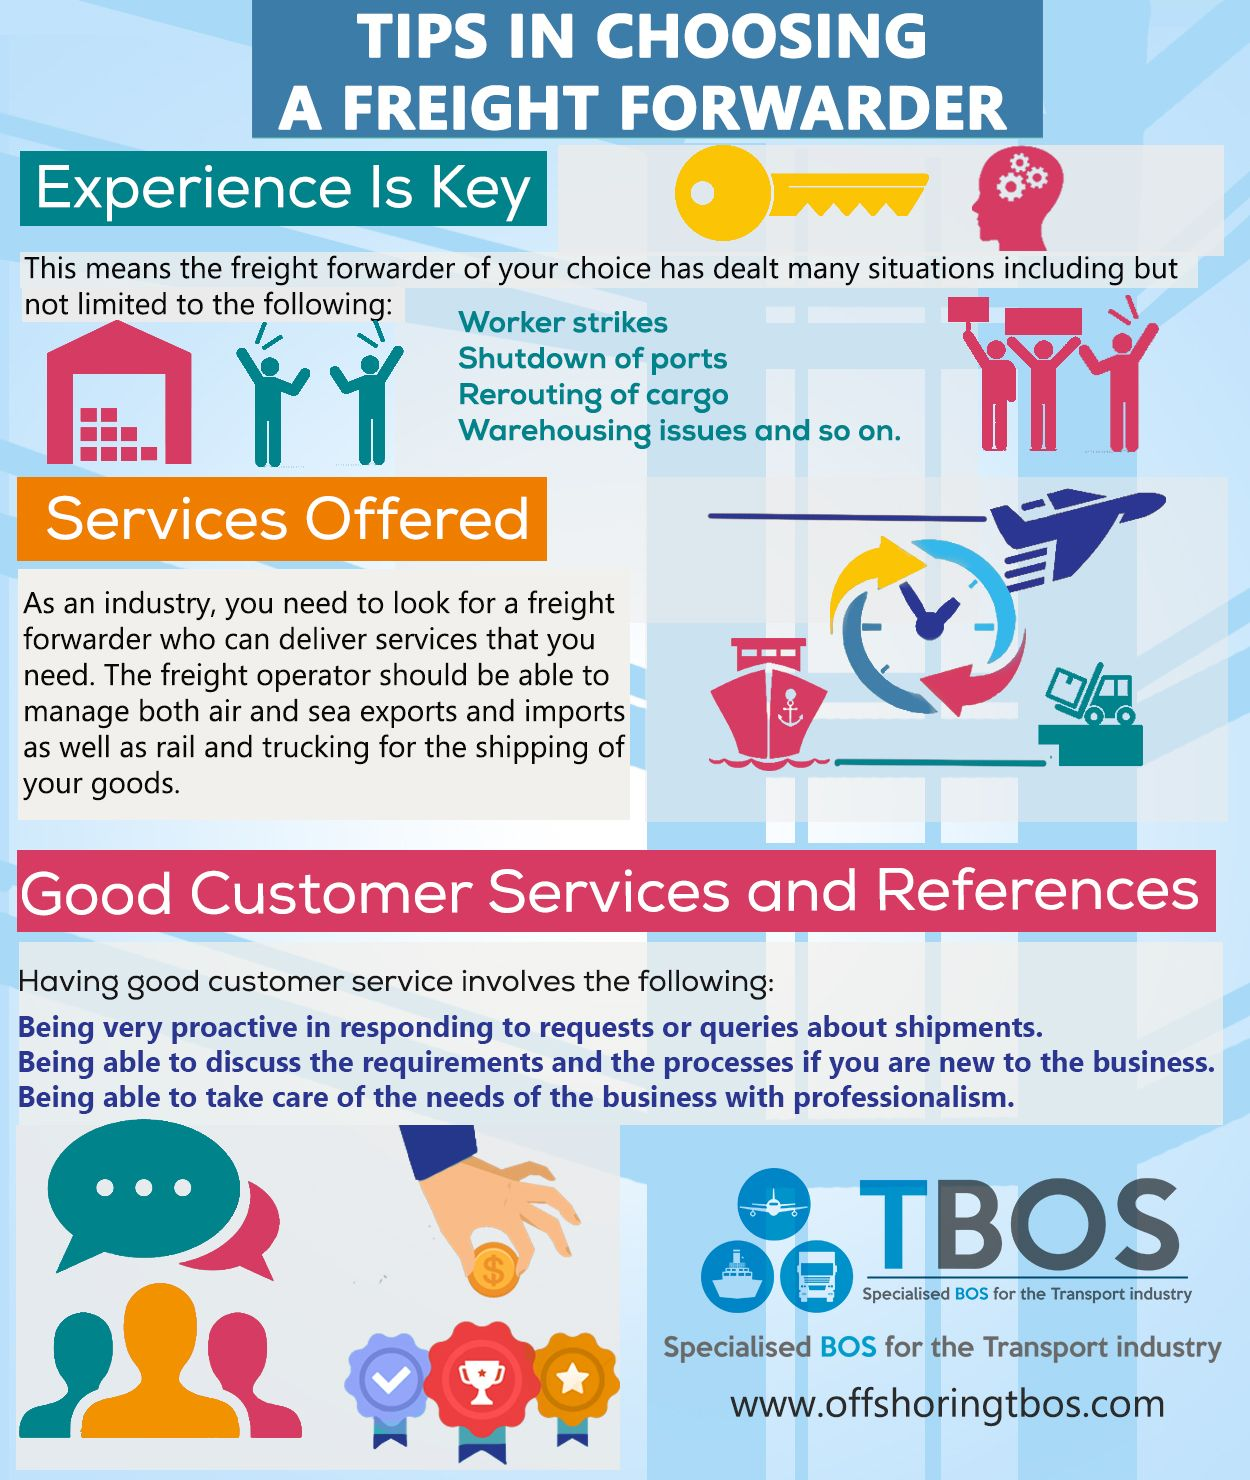 Tips in Choosing a Freight Forwarder   Infographics   Layout